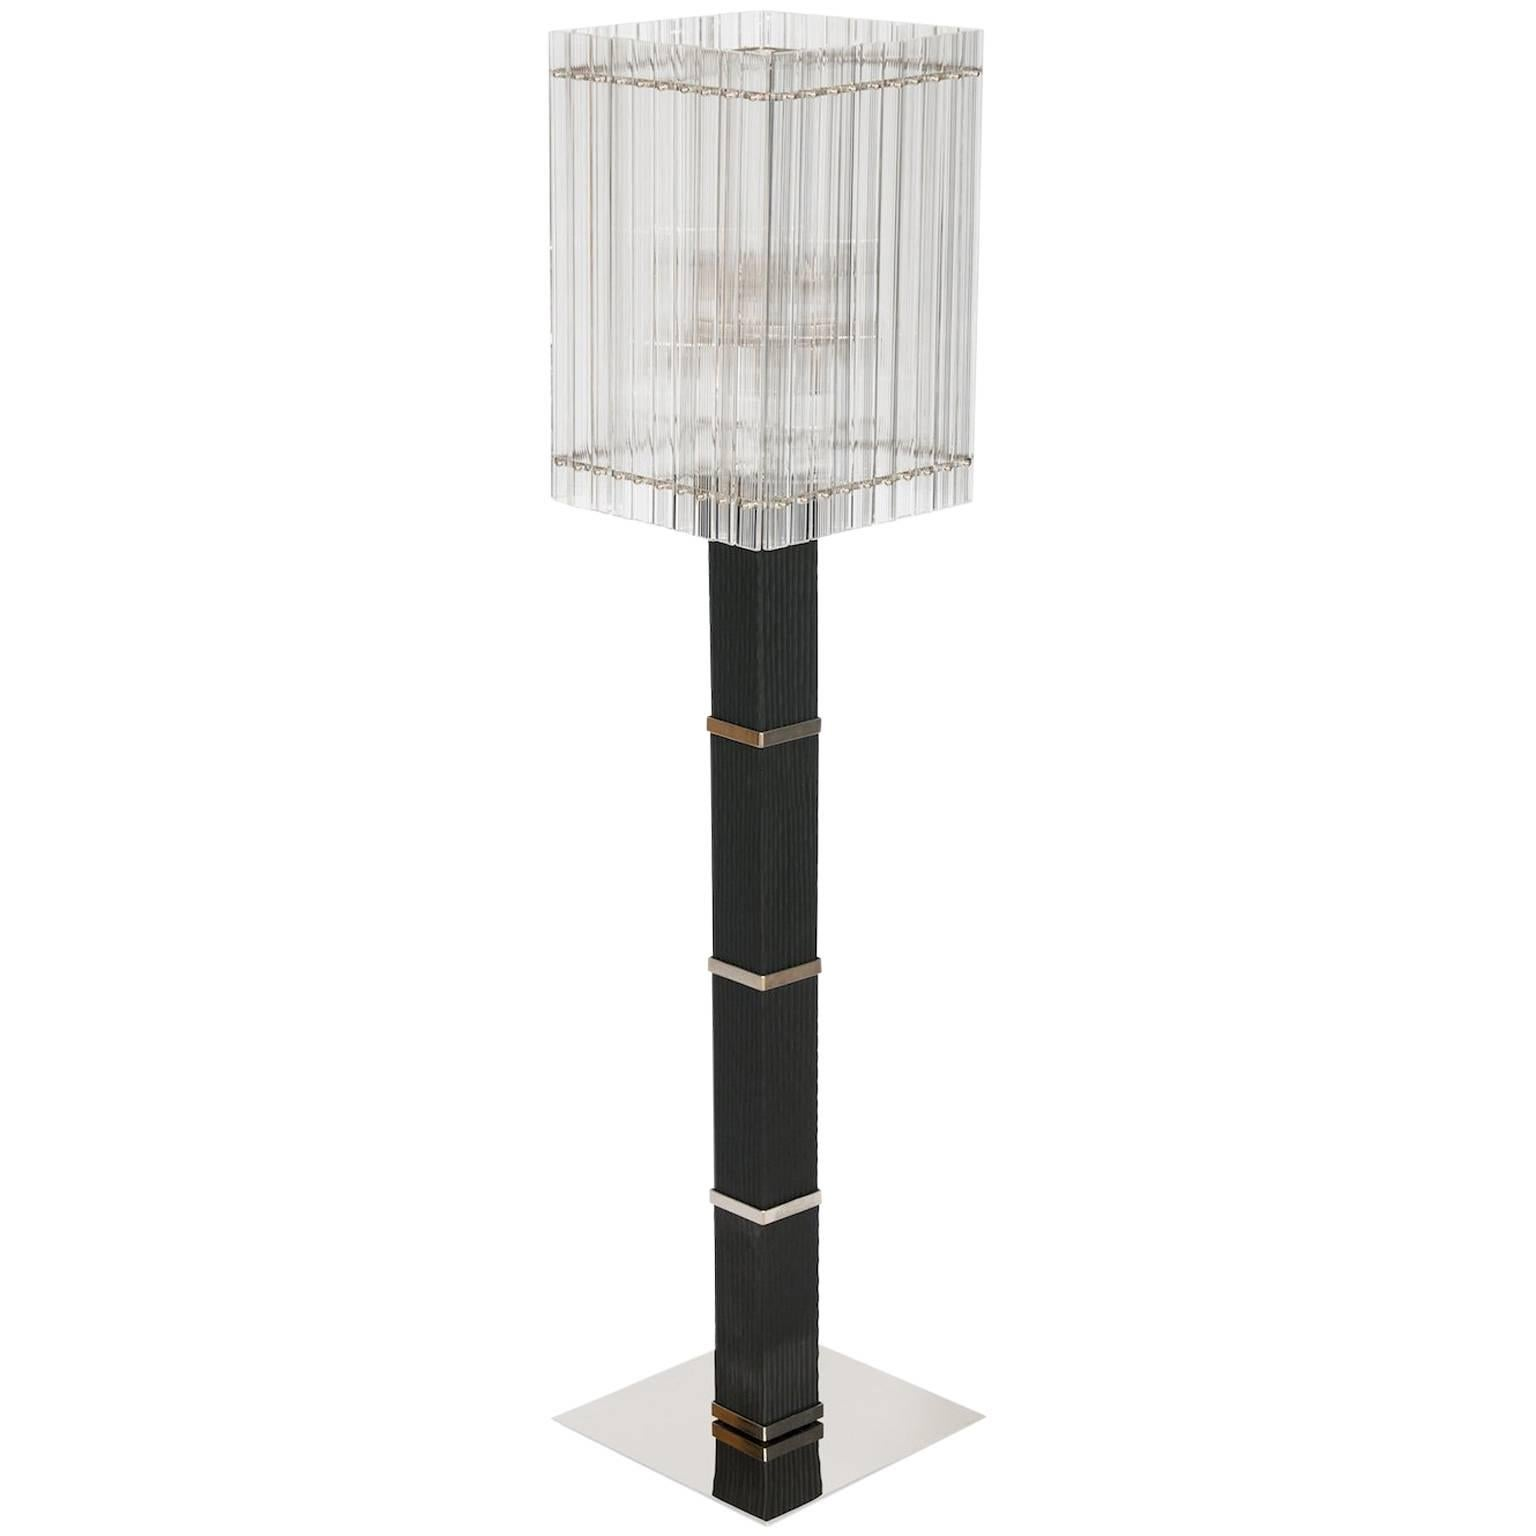 Modern Floor Lamp in Black and Transparent Murano Glass 1990s Italy